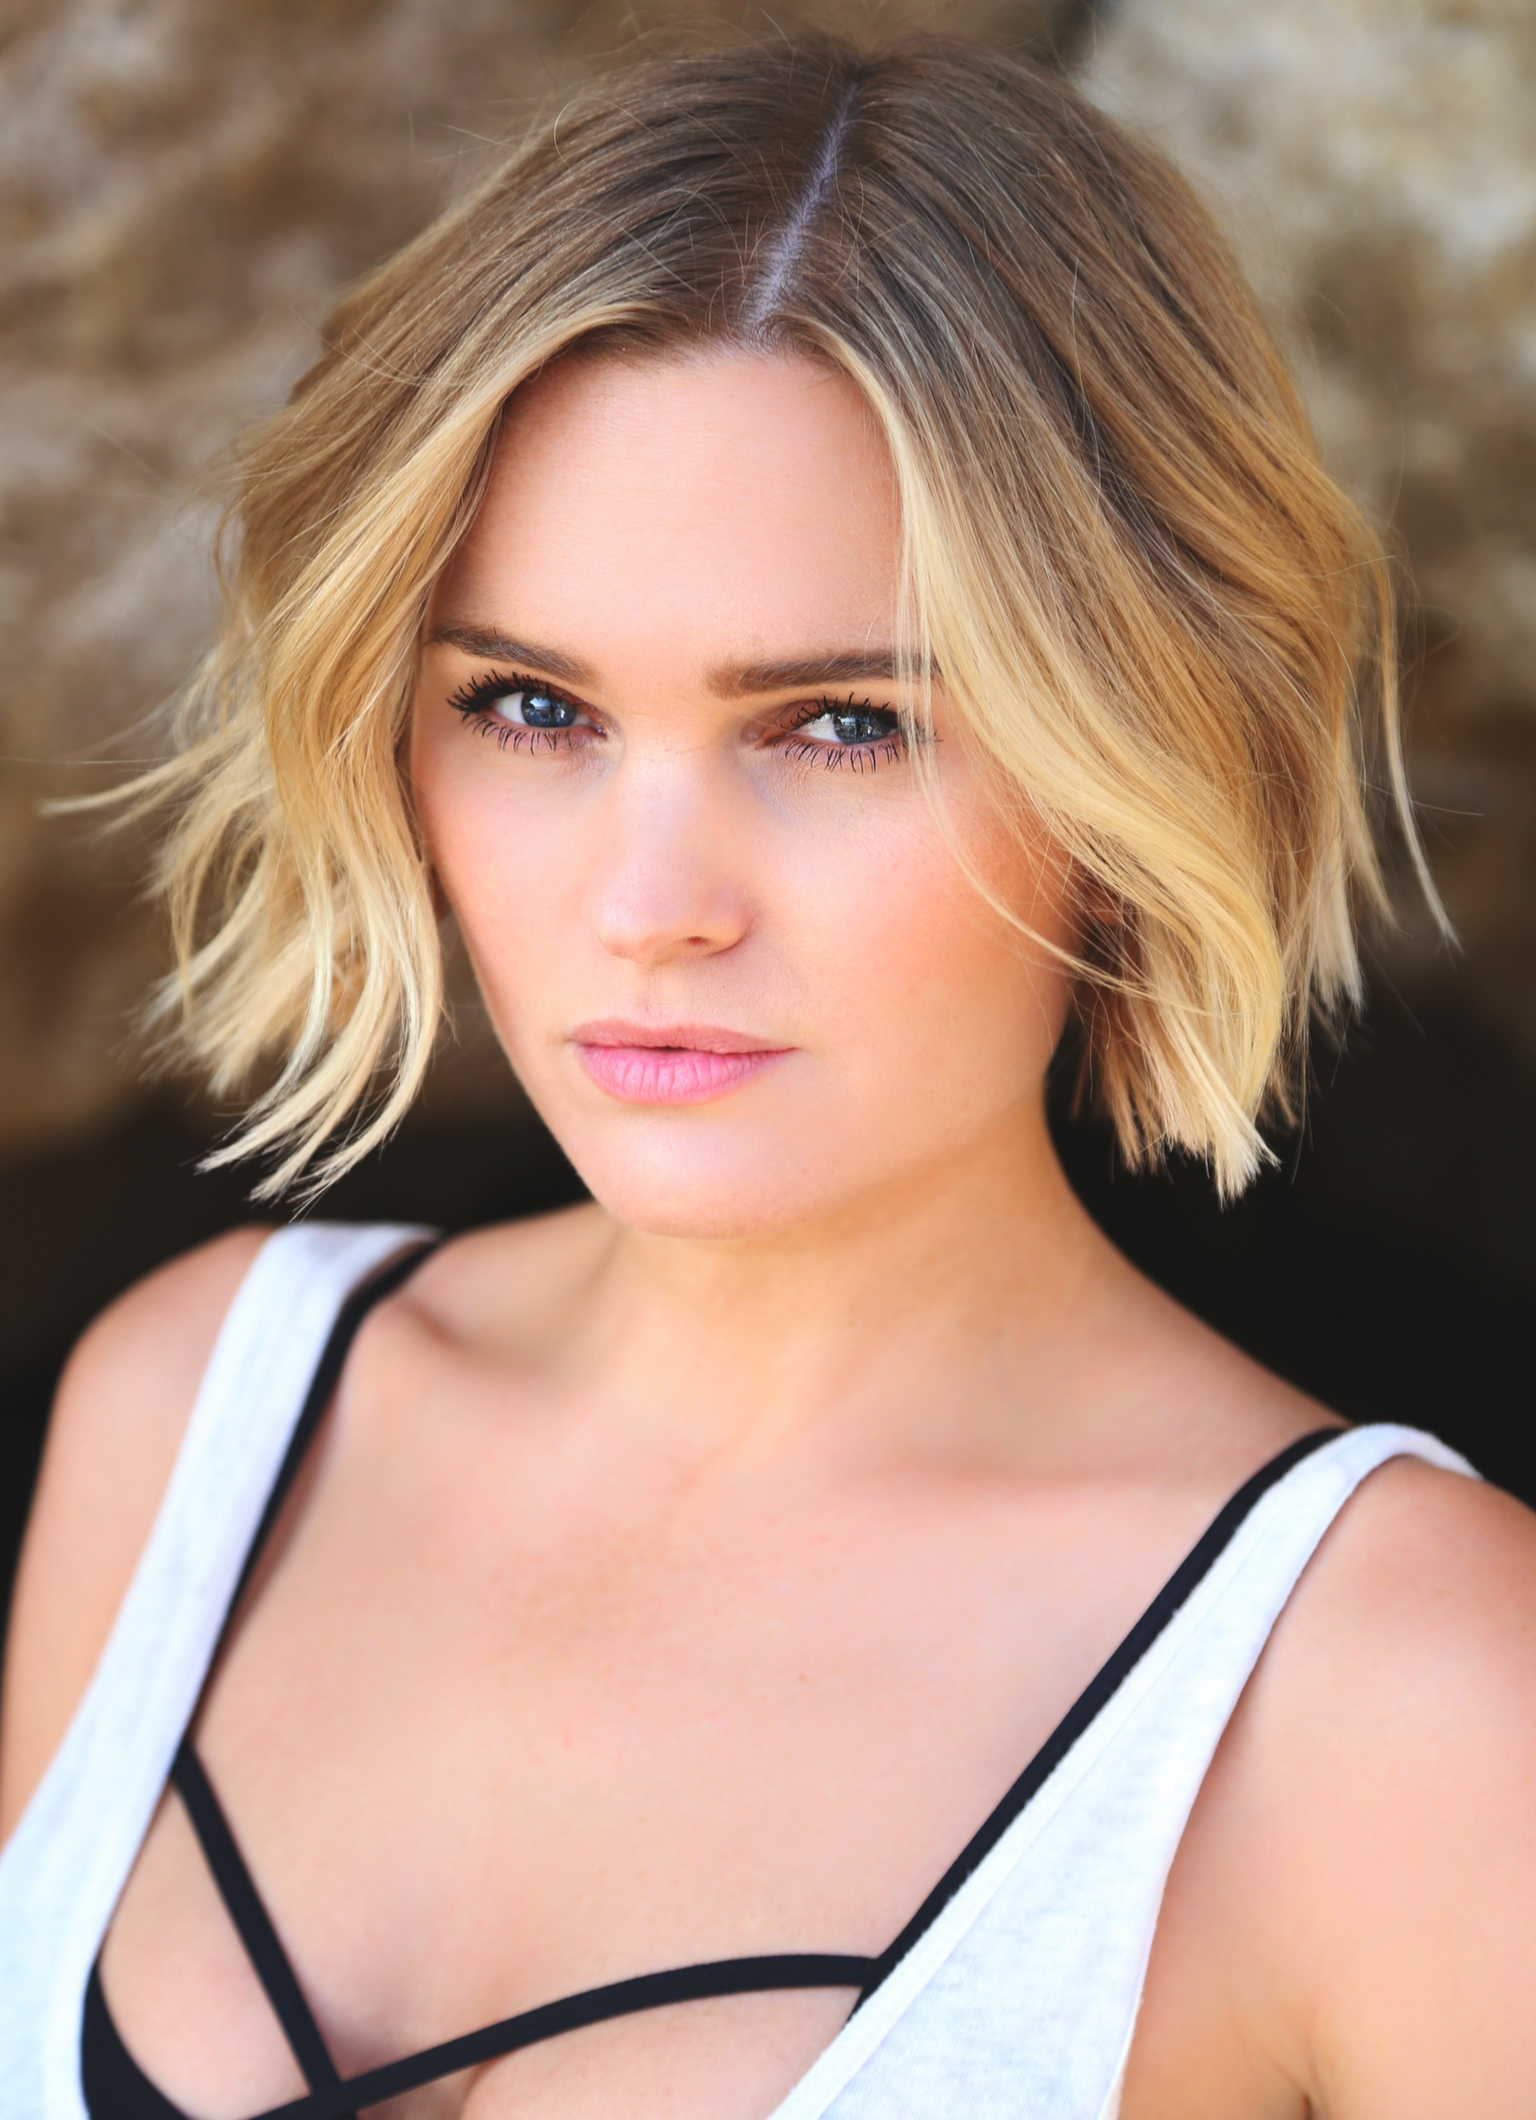 Interview: Sunny Mabrey talks iconic role on Once Upon a Time, Vine